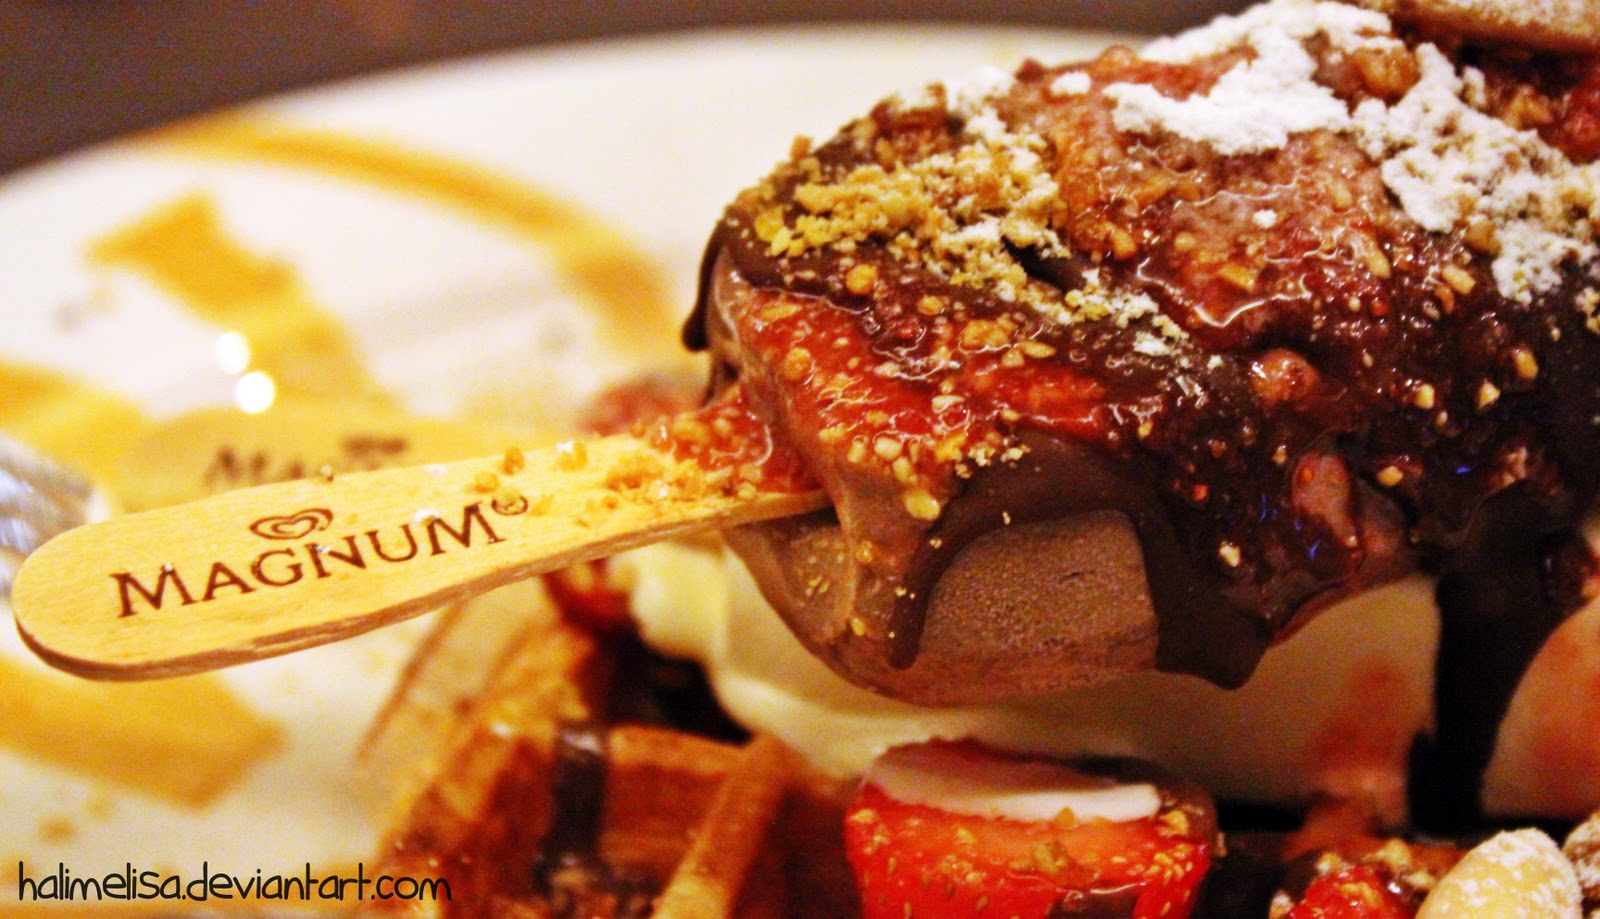 magnum ice cream wallpapers new best wallpapers 2016